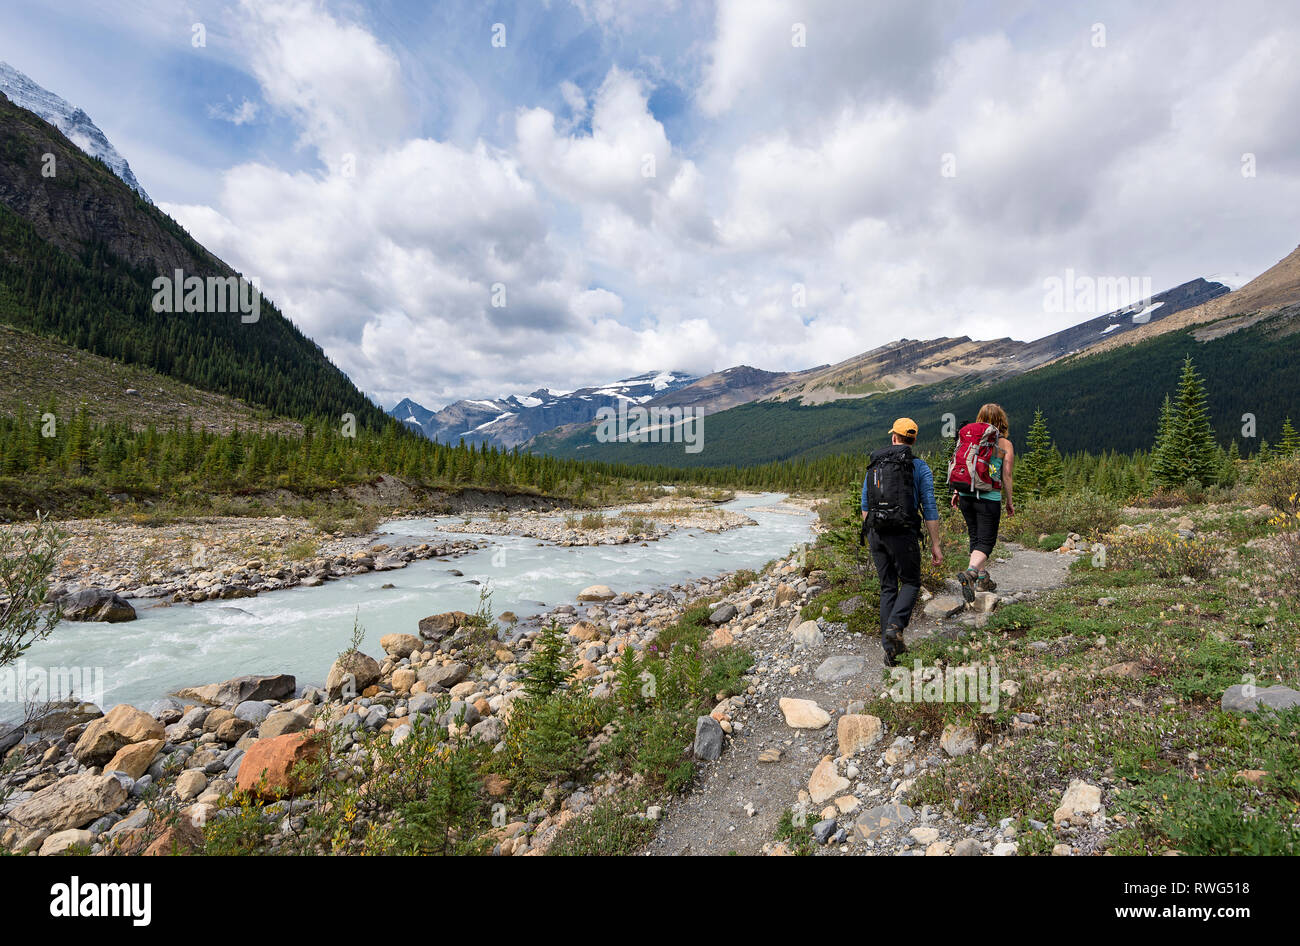 A man and woman hike the trail back from Snowbird pass, along the Robson river, Mt. Robson Provincial Park, British Columbia, Thompson Okanagan region - Stock Image